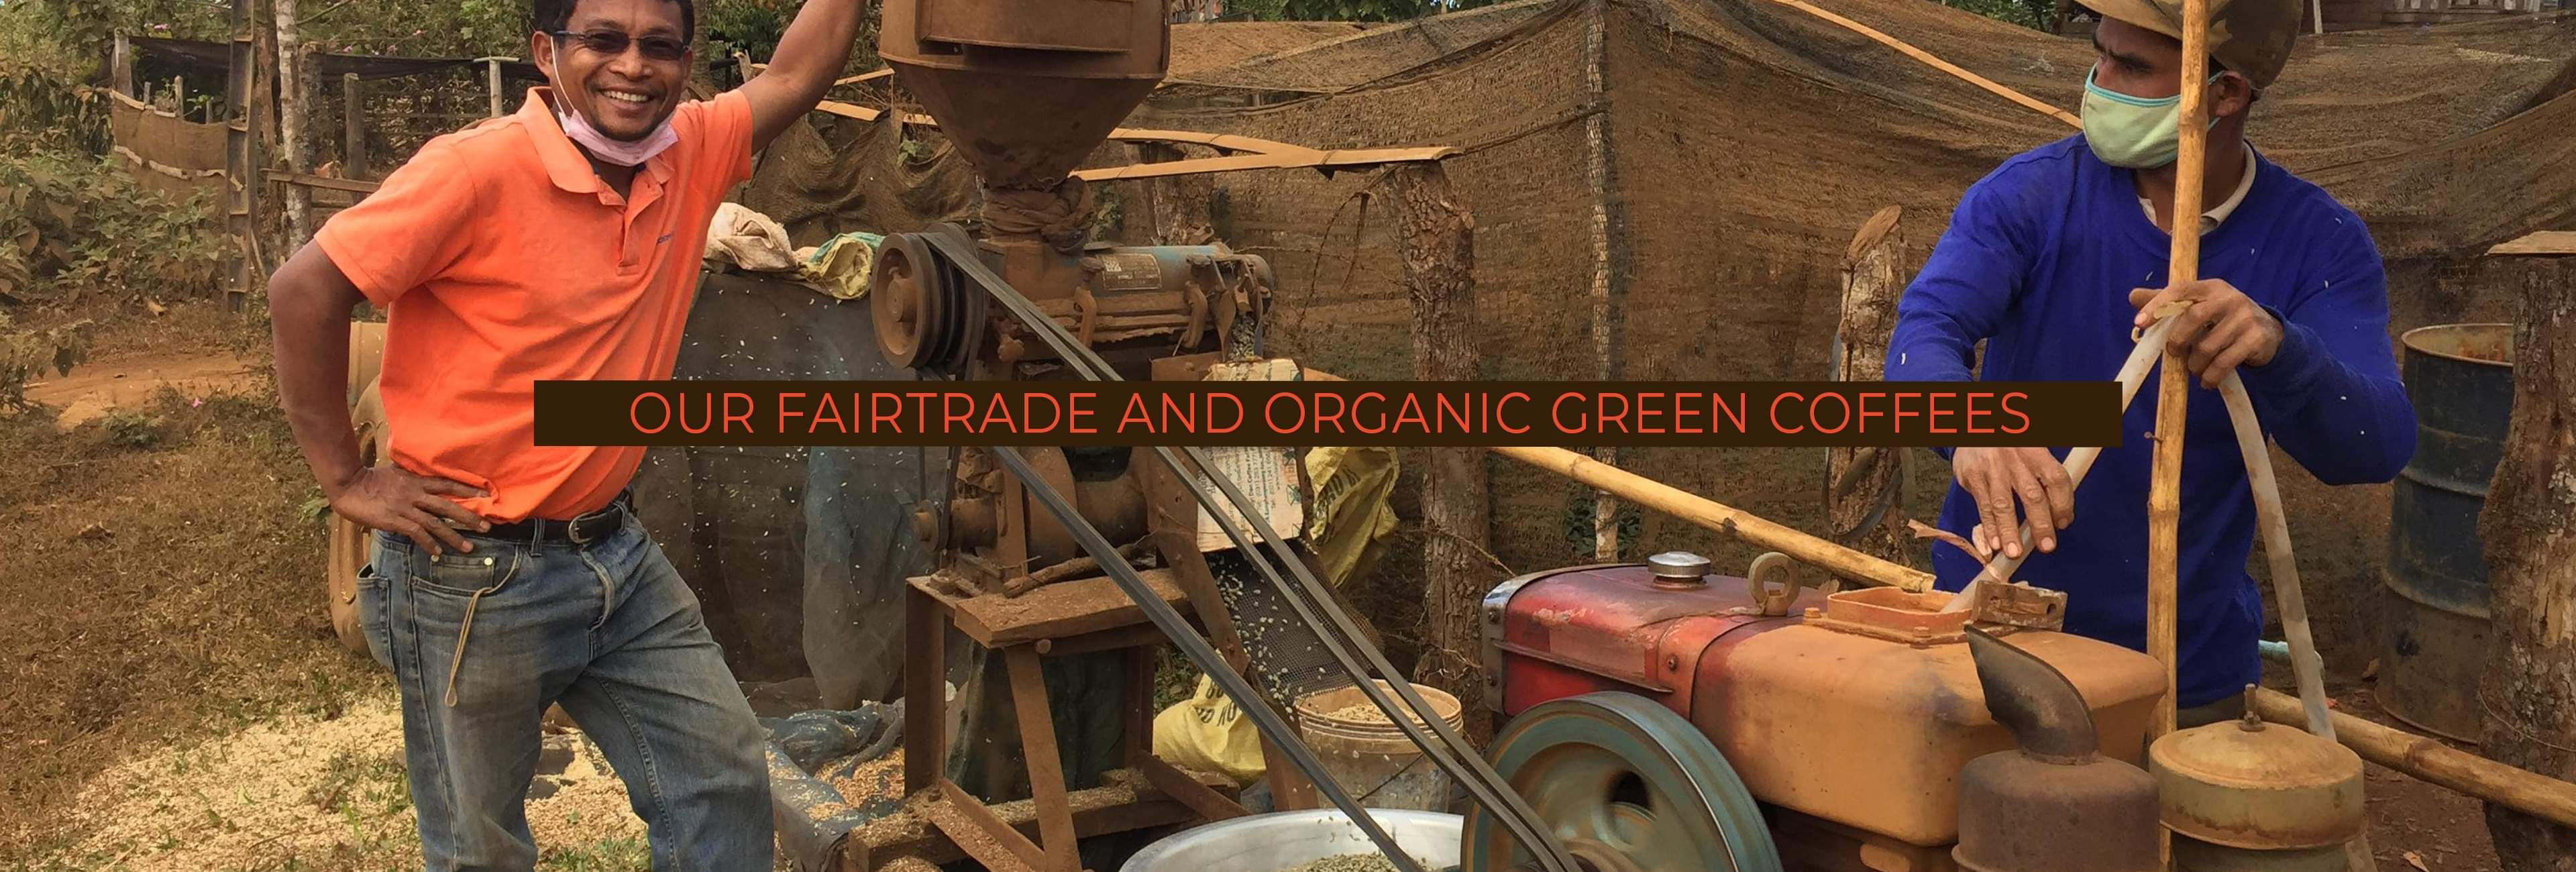 Our Fair trade and Organic green coffee